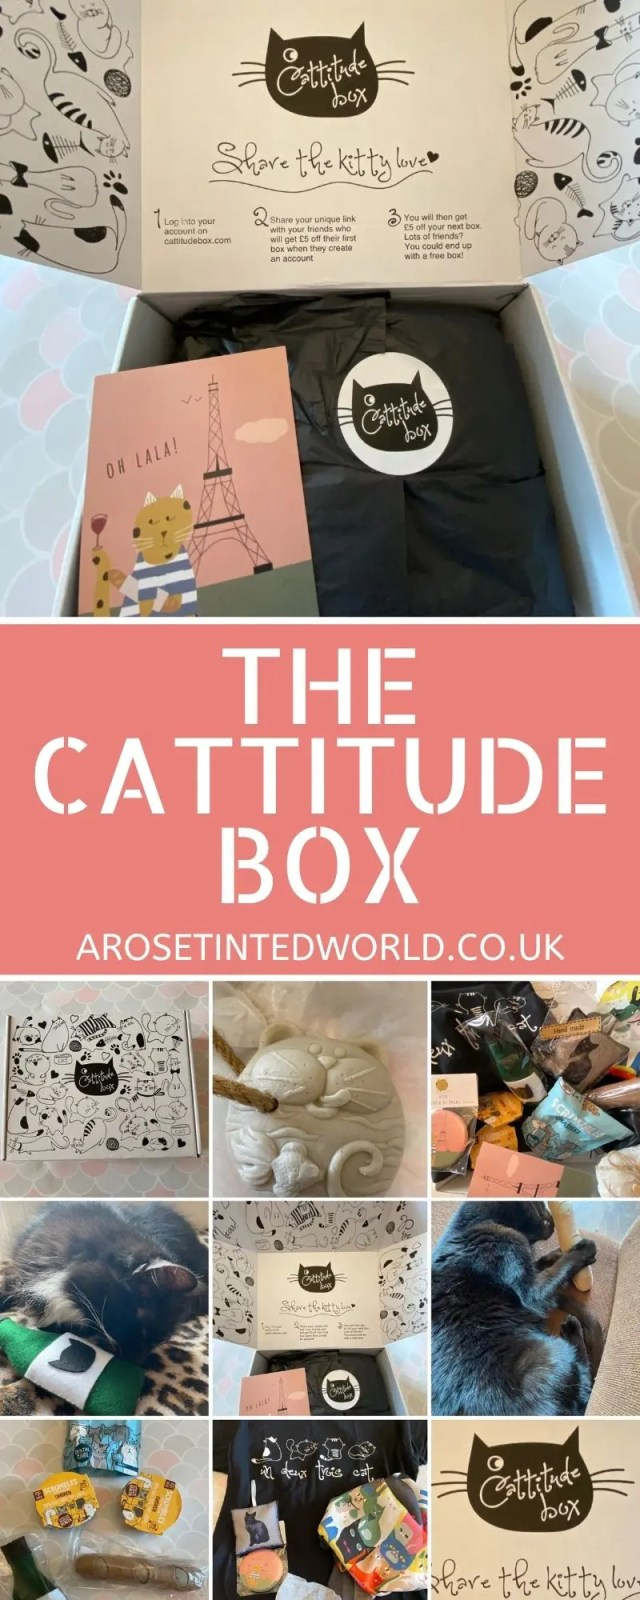 The Cattitude Box is a monthly subscription box for cat lovers. Have a feline loving friend? This could be the purr-fect gift idea! Great idea as a Christmas, birthday present for a cat lover. Monthly subscription box or stand alone boxes available for purchase. Unique gift idea.